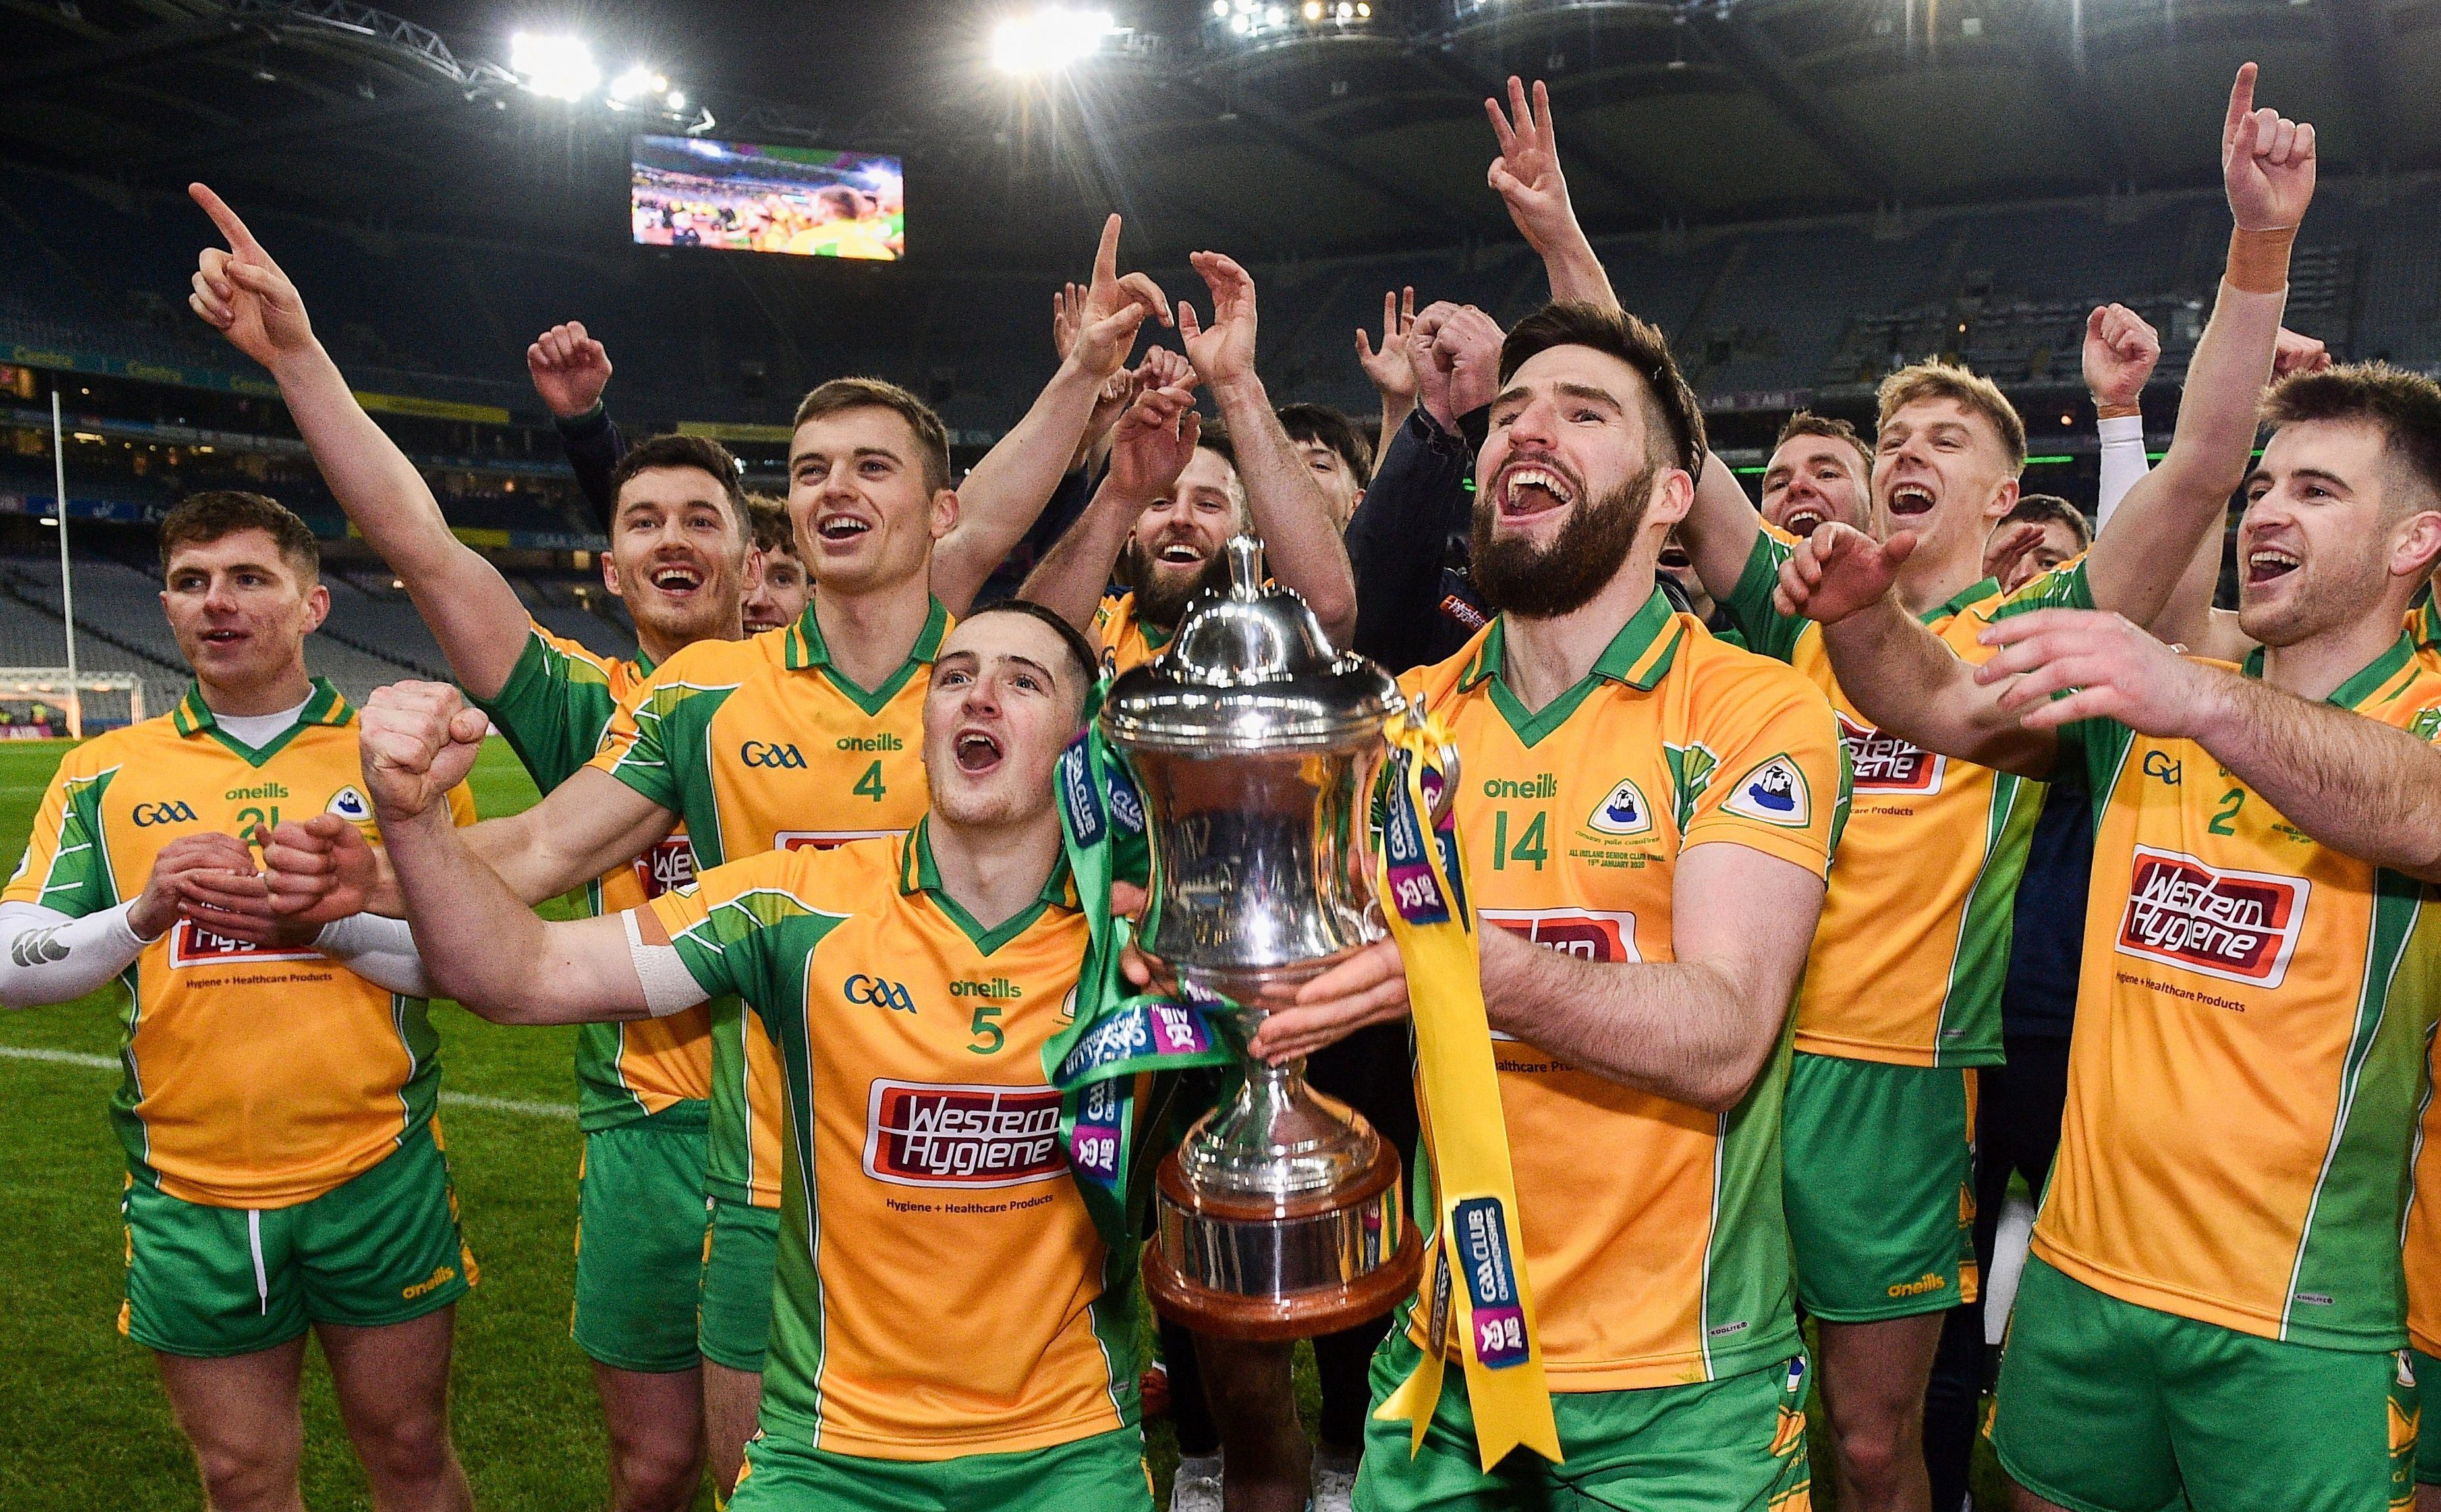 CBE's Ronan Steede and Ciarán Brady help Corofin GAA capture historic 3 in-a-row Club All-Ireland